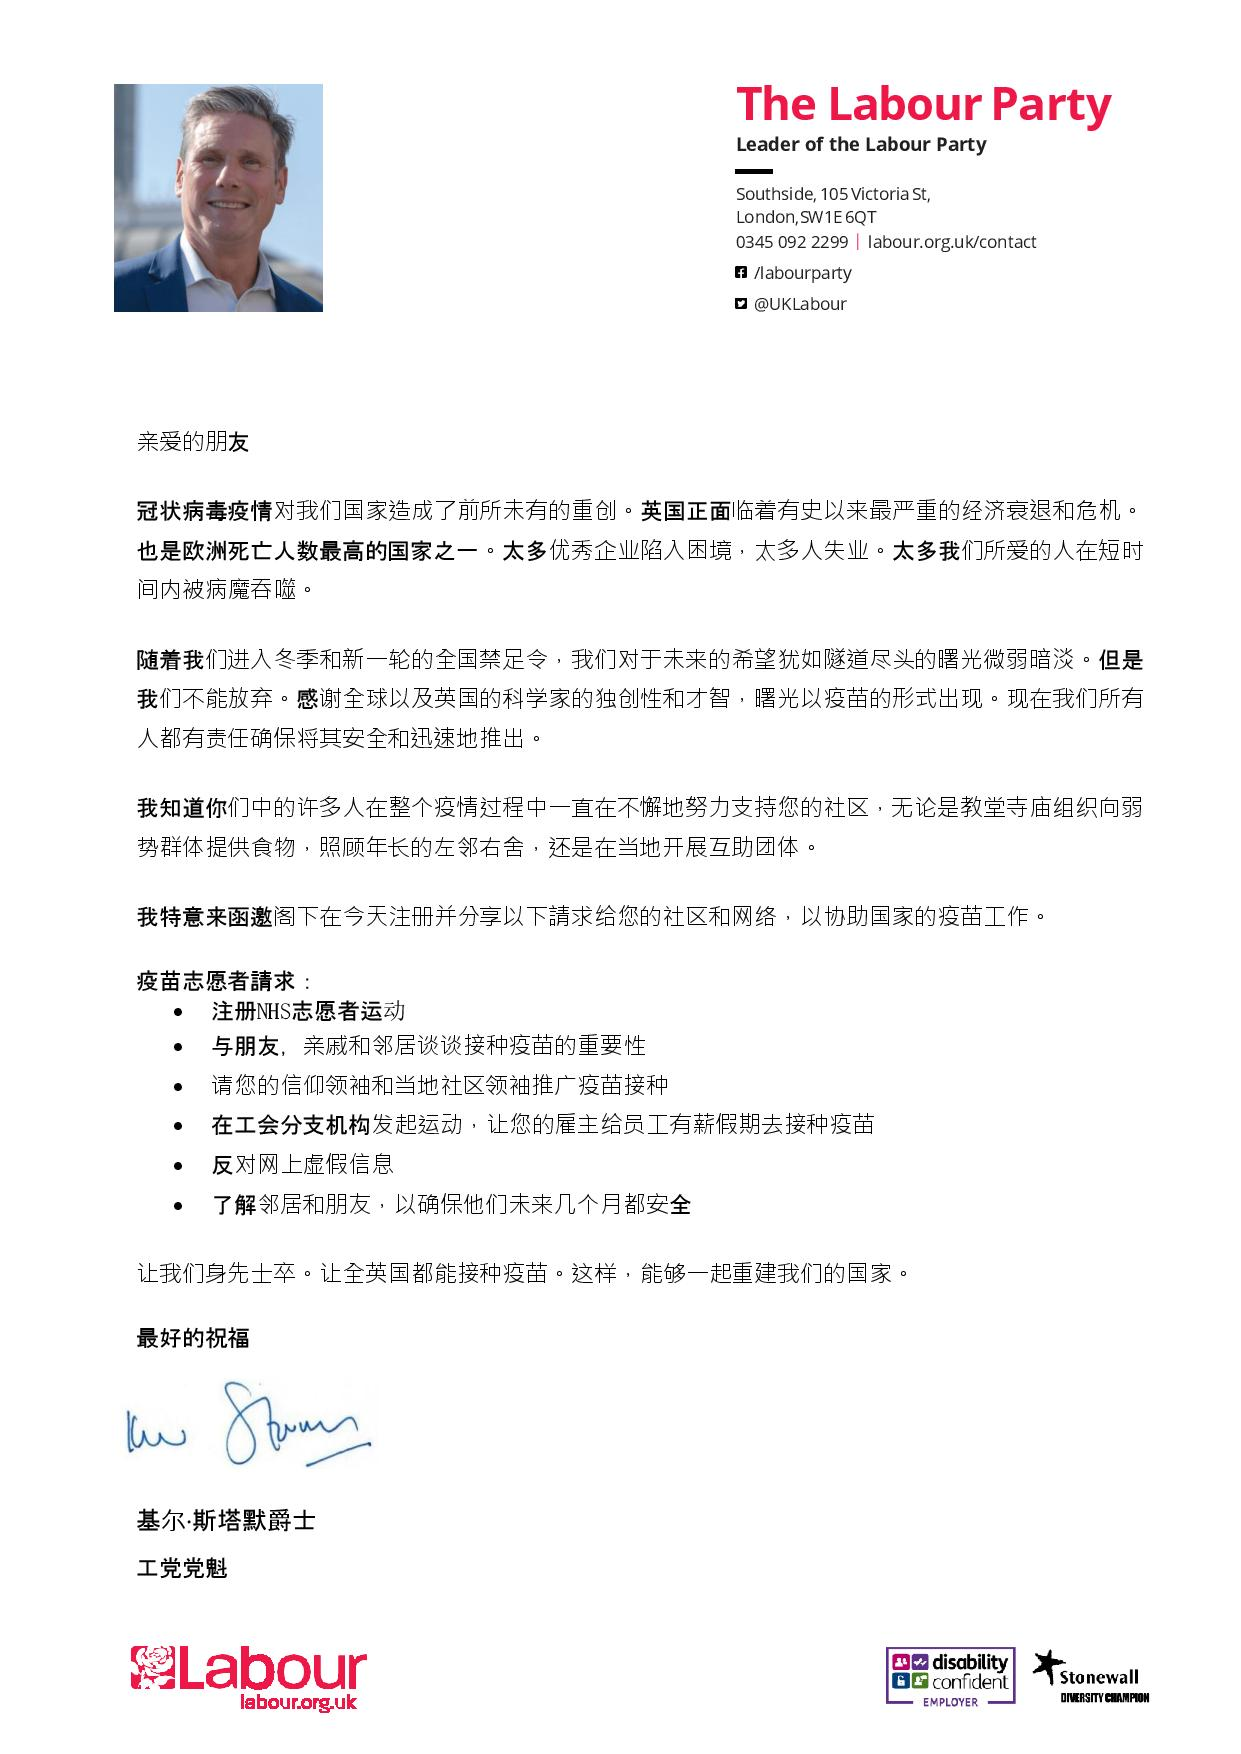 Letter_from_Keir_Starmer_-_Simplified_Chinese_-page-001.jpg